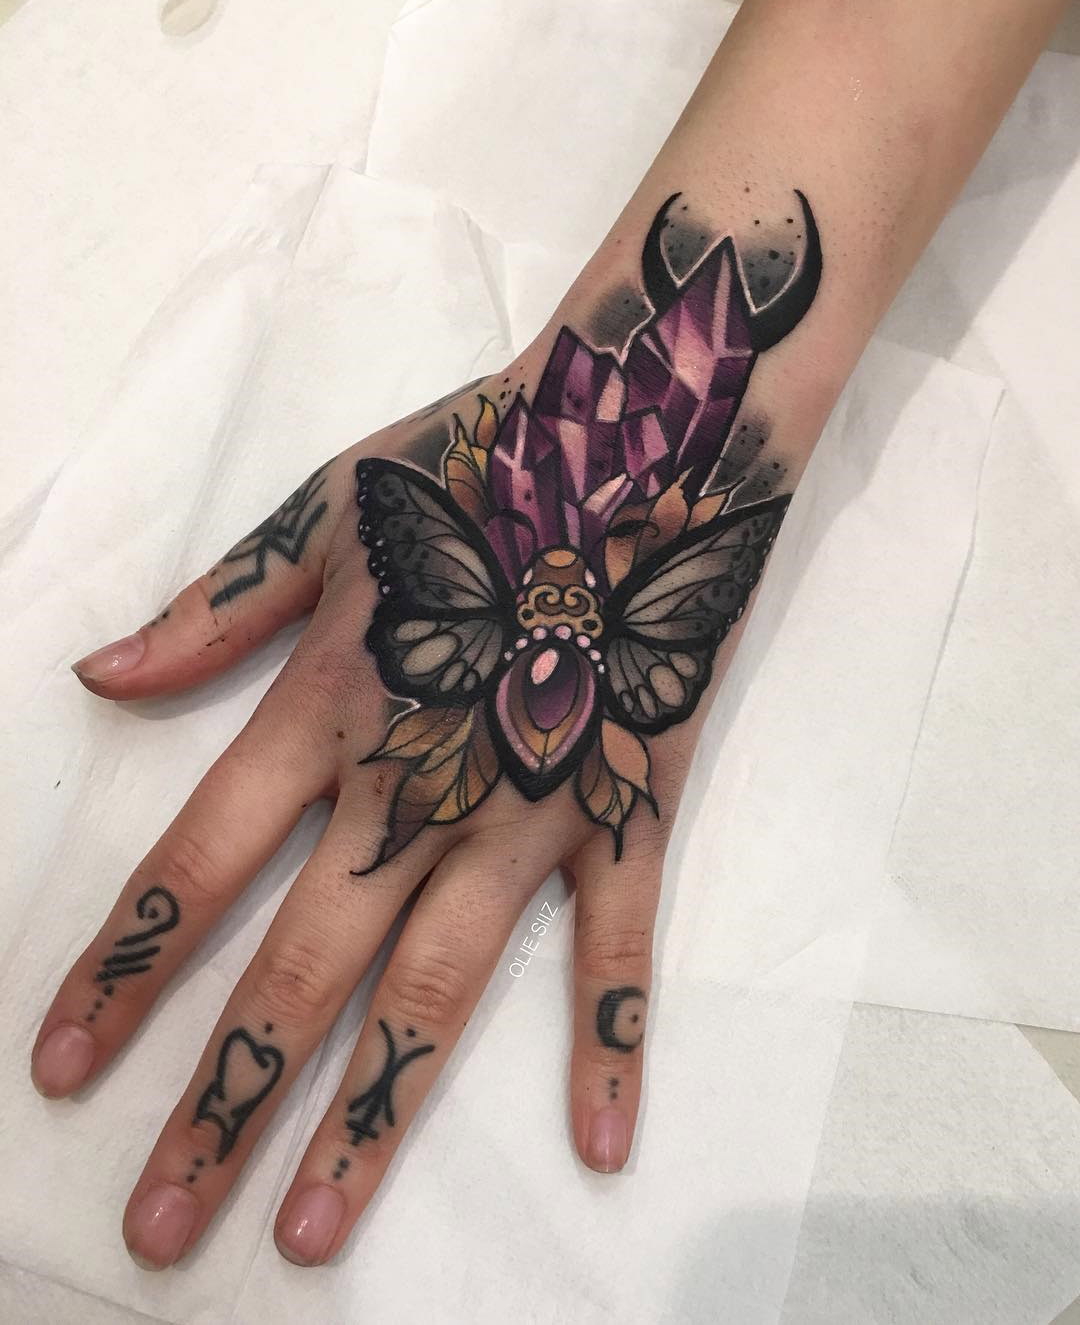 Moth & Crystals, Girls Hand Tattoo